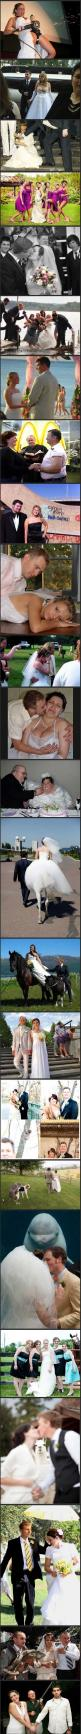 Mostly unfortunate wedding photos.. So so bad and yet so funny! CAN'T STOP LAUGHING  More at: http://livinglearningandloving.com/things-we-like-and-love/: Awkward Wedding, Giggle, Wedding Photos, Funny Wedding, So Funny, Wedding Pictures